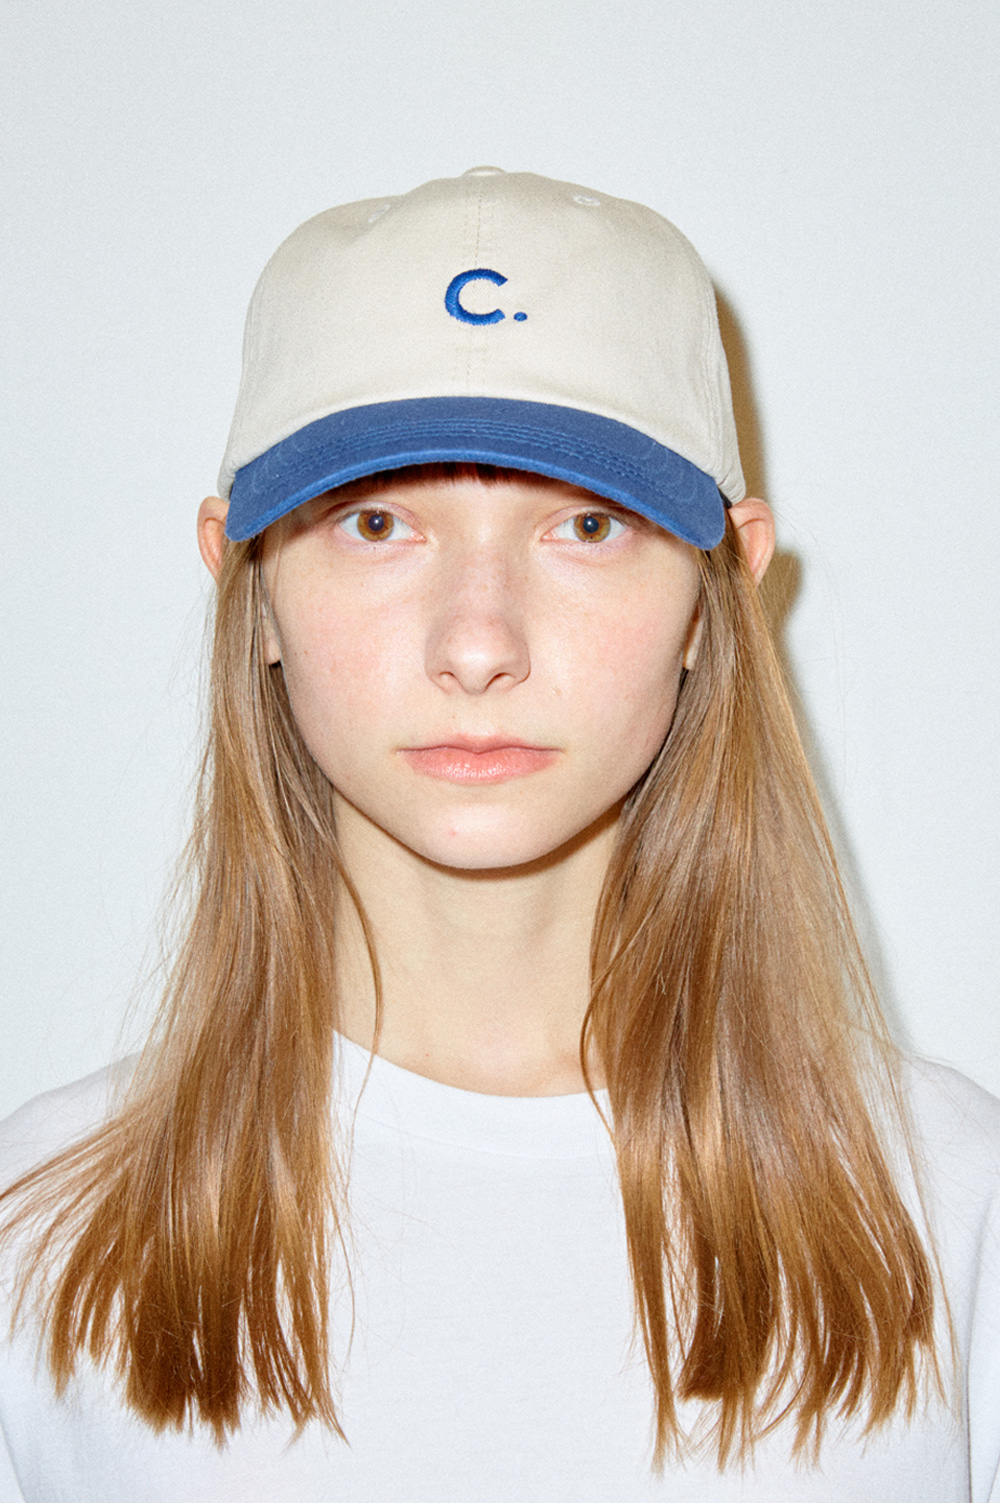 clove - Basic Fit Ball Cap Colorblock (Navy)